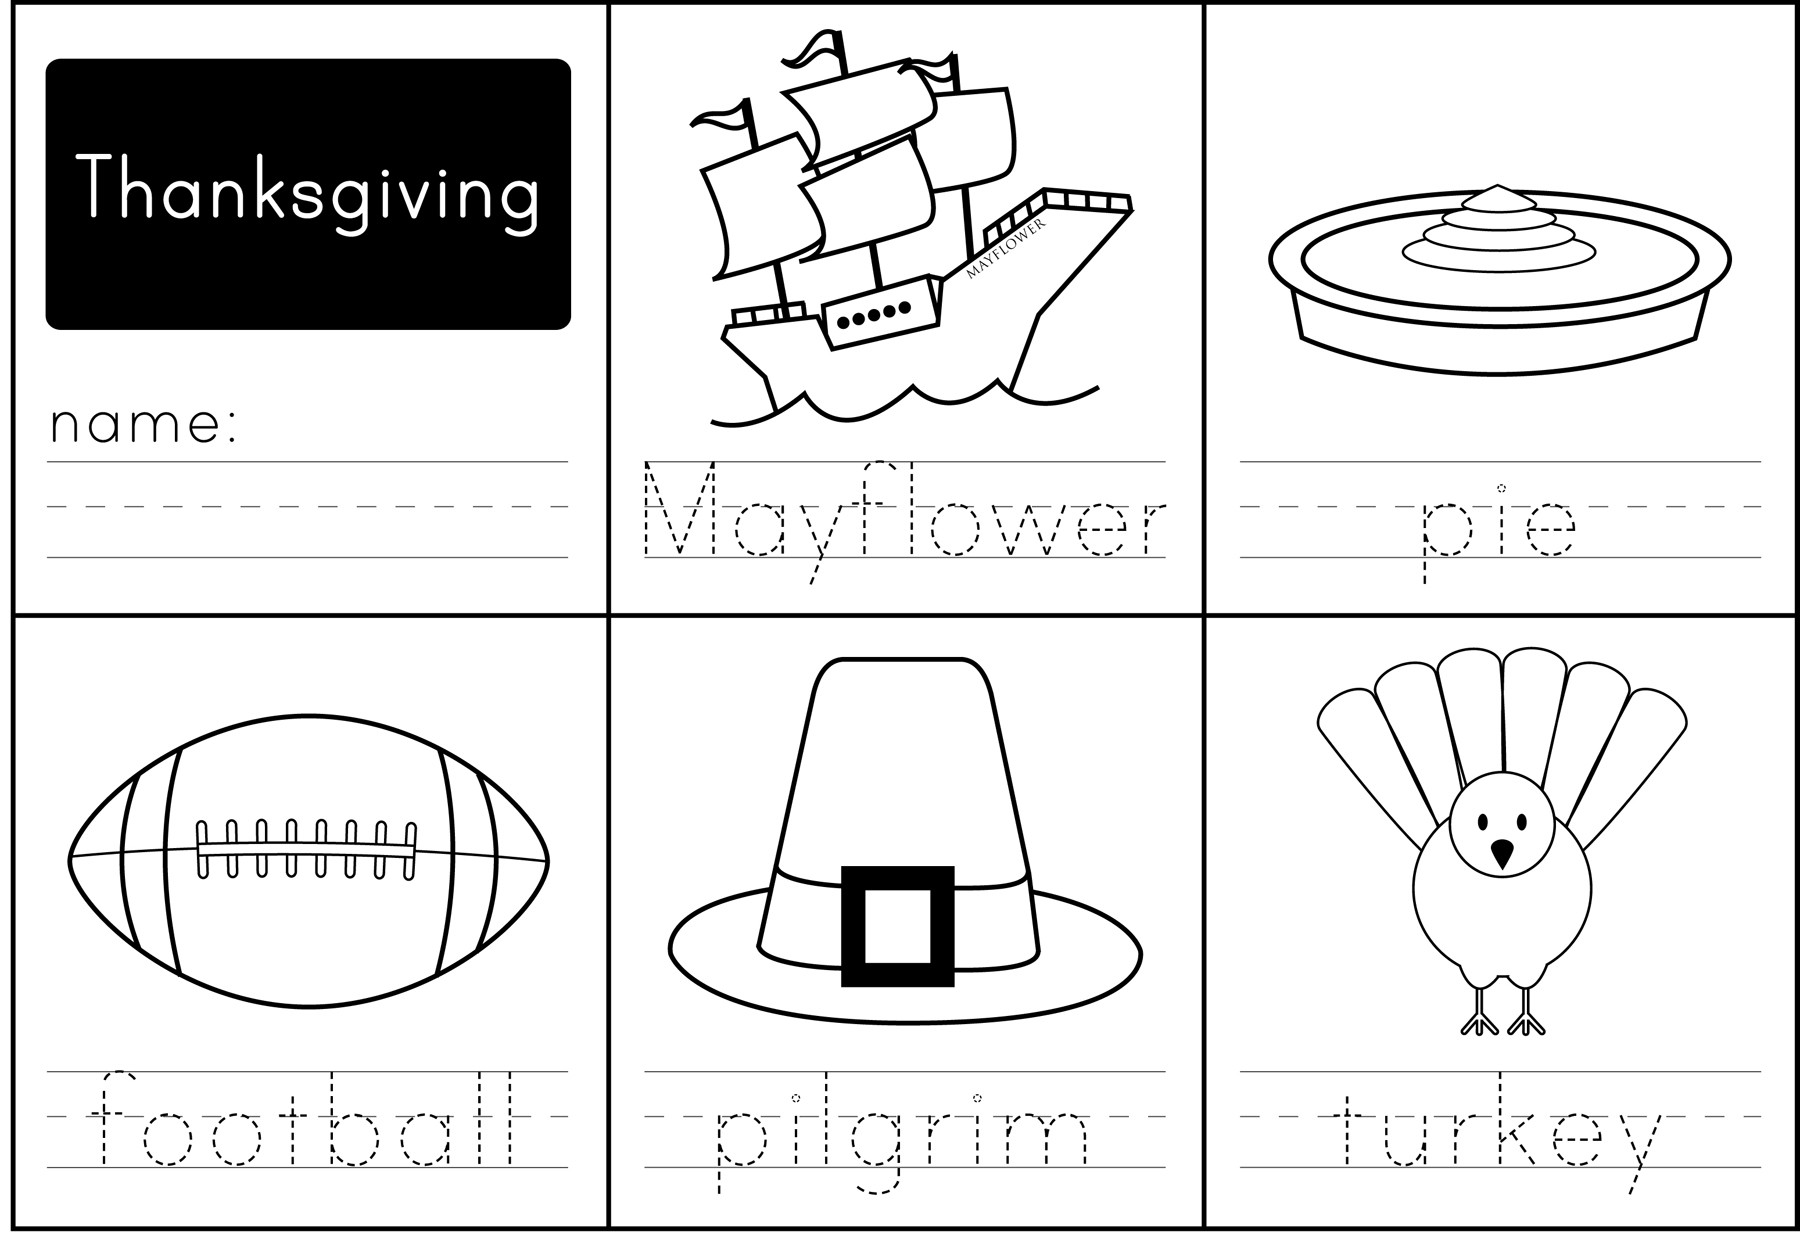 A Turkey For Thanksgiving Activities  Thanksgiving Activities Paging Supermom